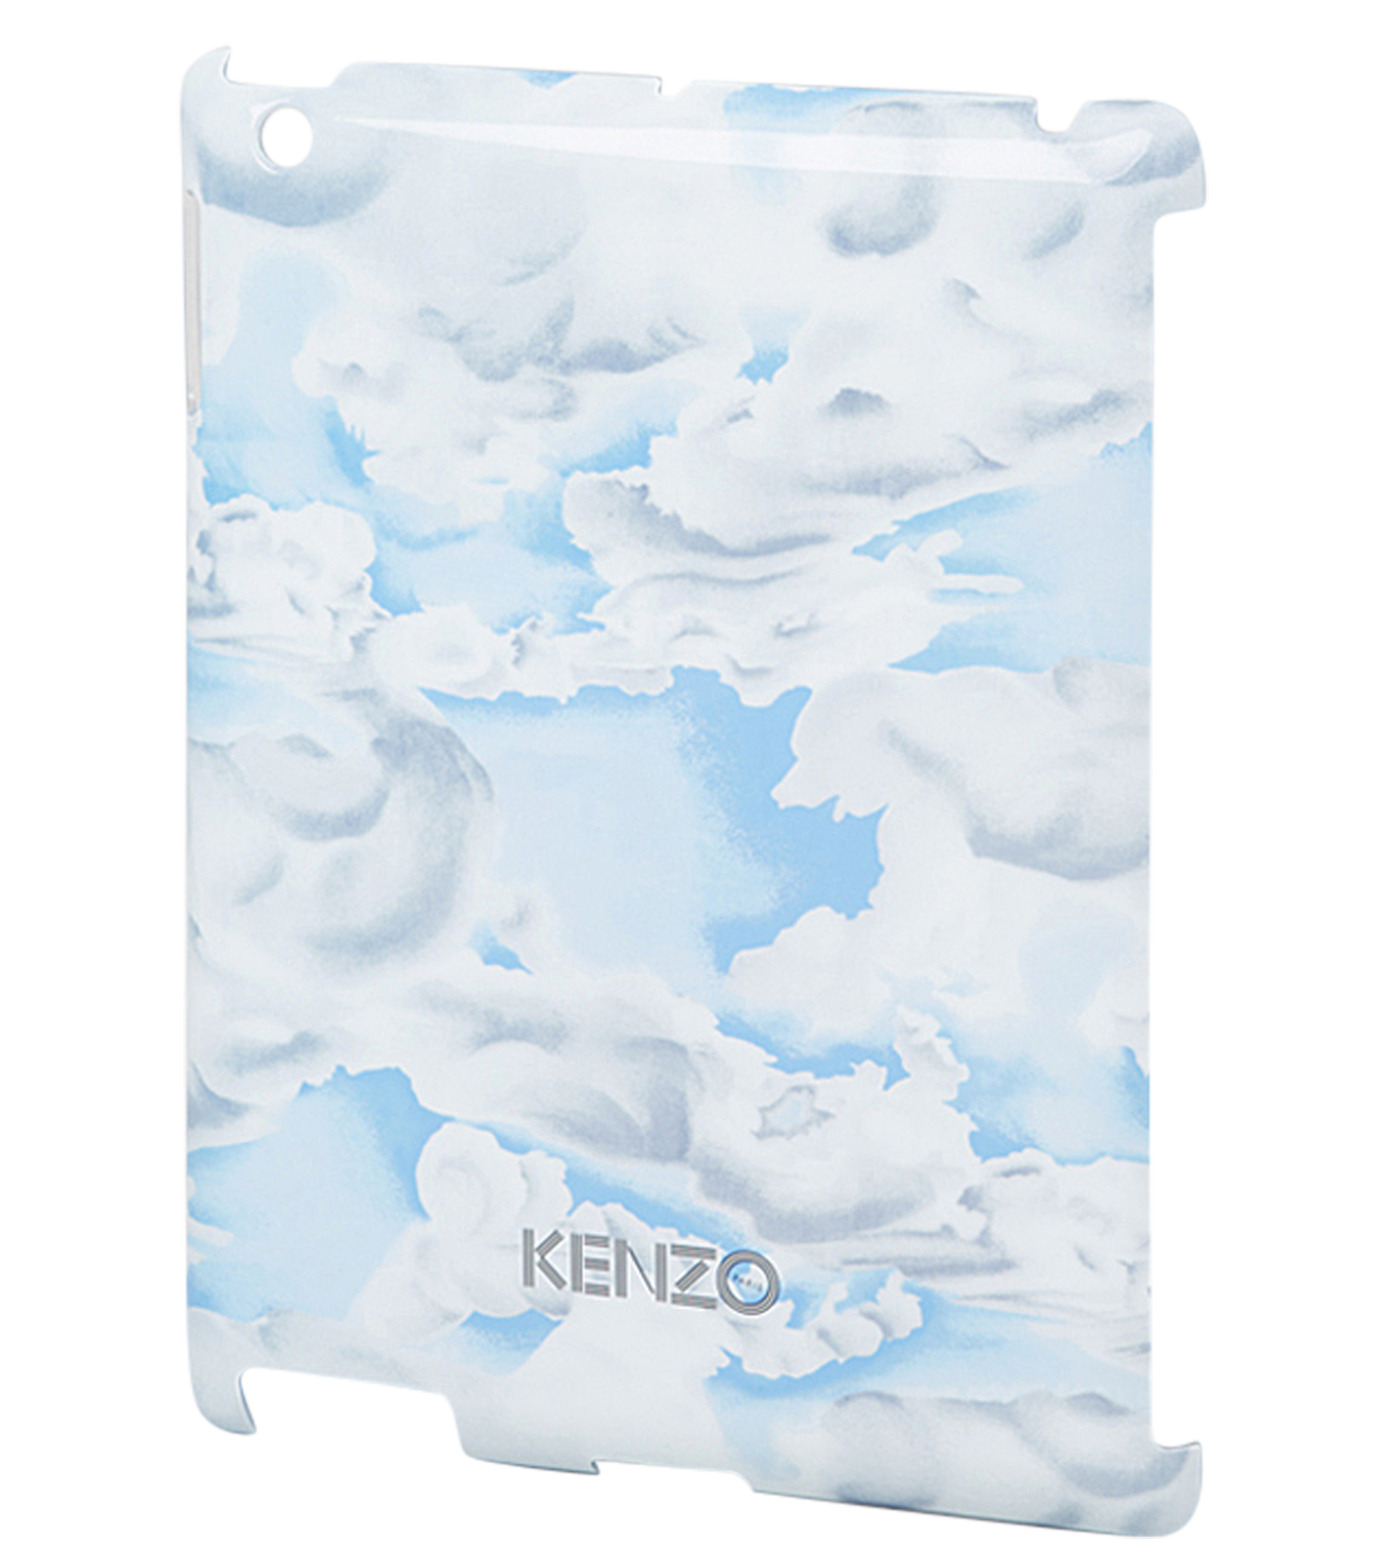 Kenzo(ケンゾー)のClouds CASE for iPad-WHITE(ケース/OTHER-GOODS/cases/OTHER-GOODS)-32COKIPDCLO-4 拡大詳細画像1